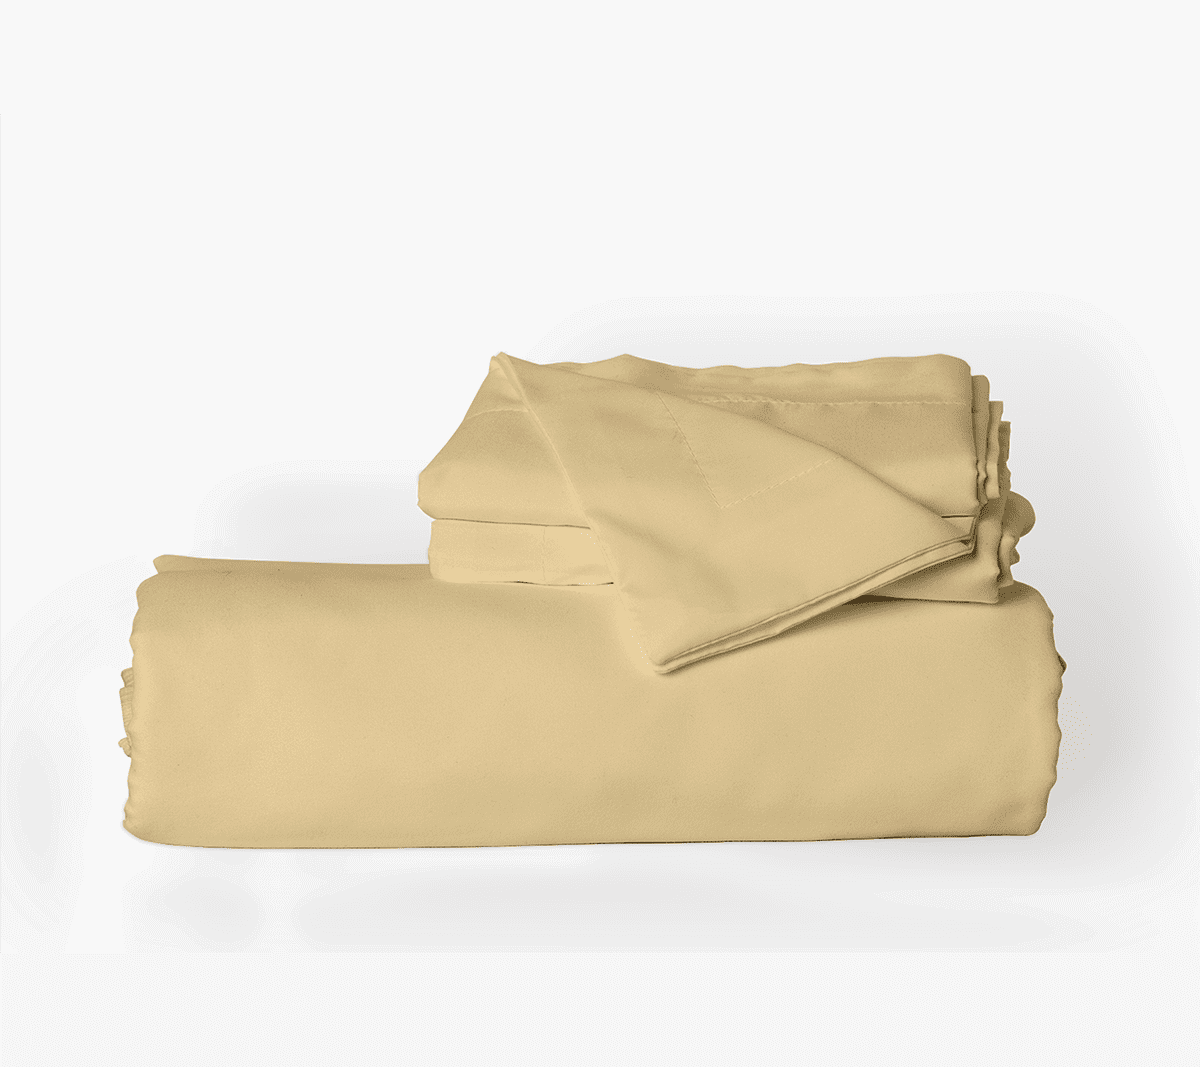 Harvest Gold Duvet Cover Set